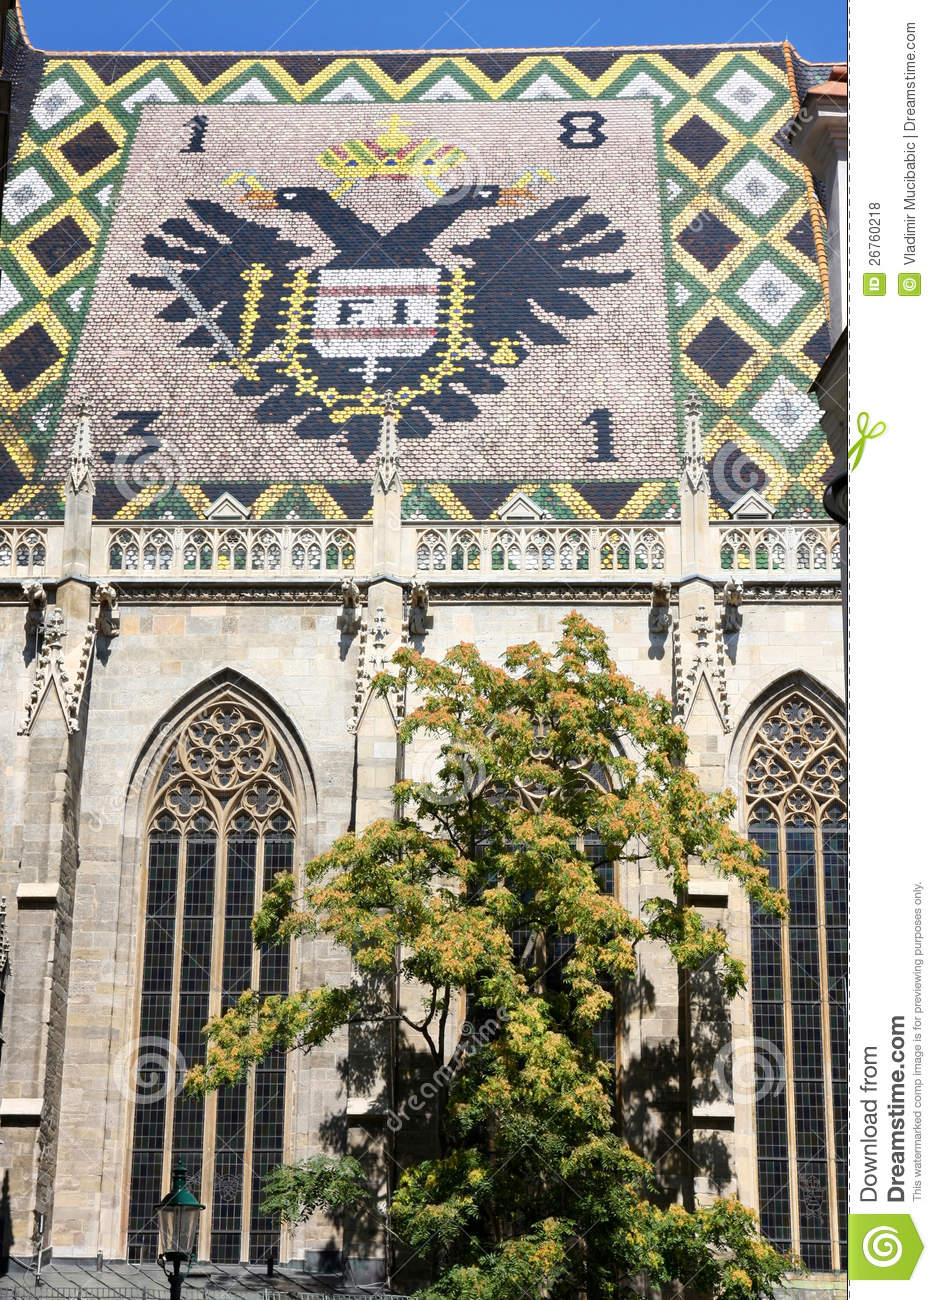 Eagle Tiles Roof Of Stephansdom In Vienna Austria Stock